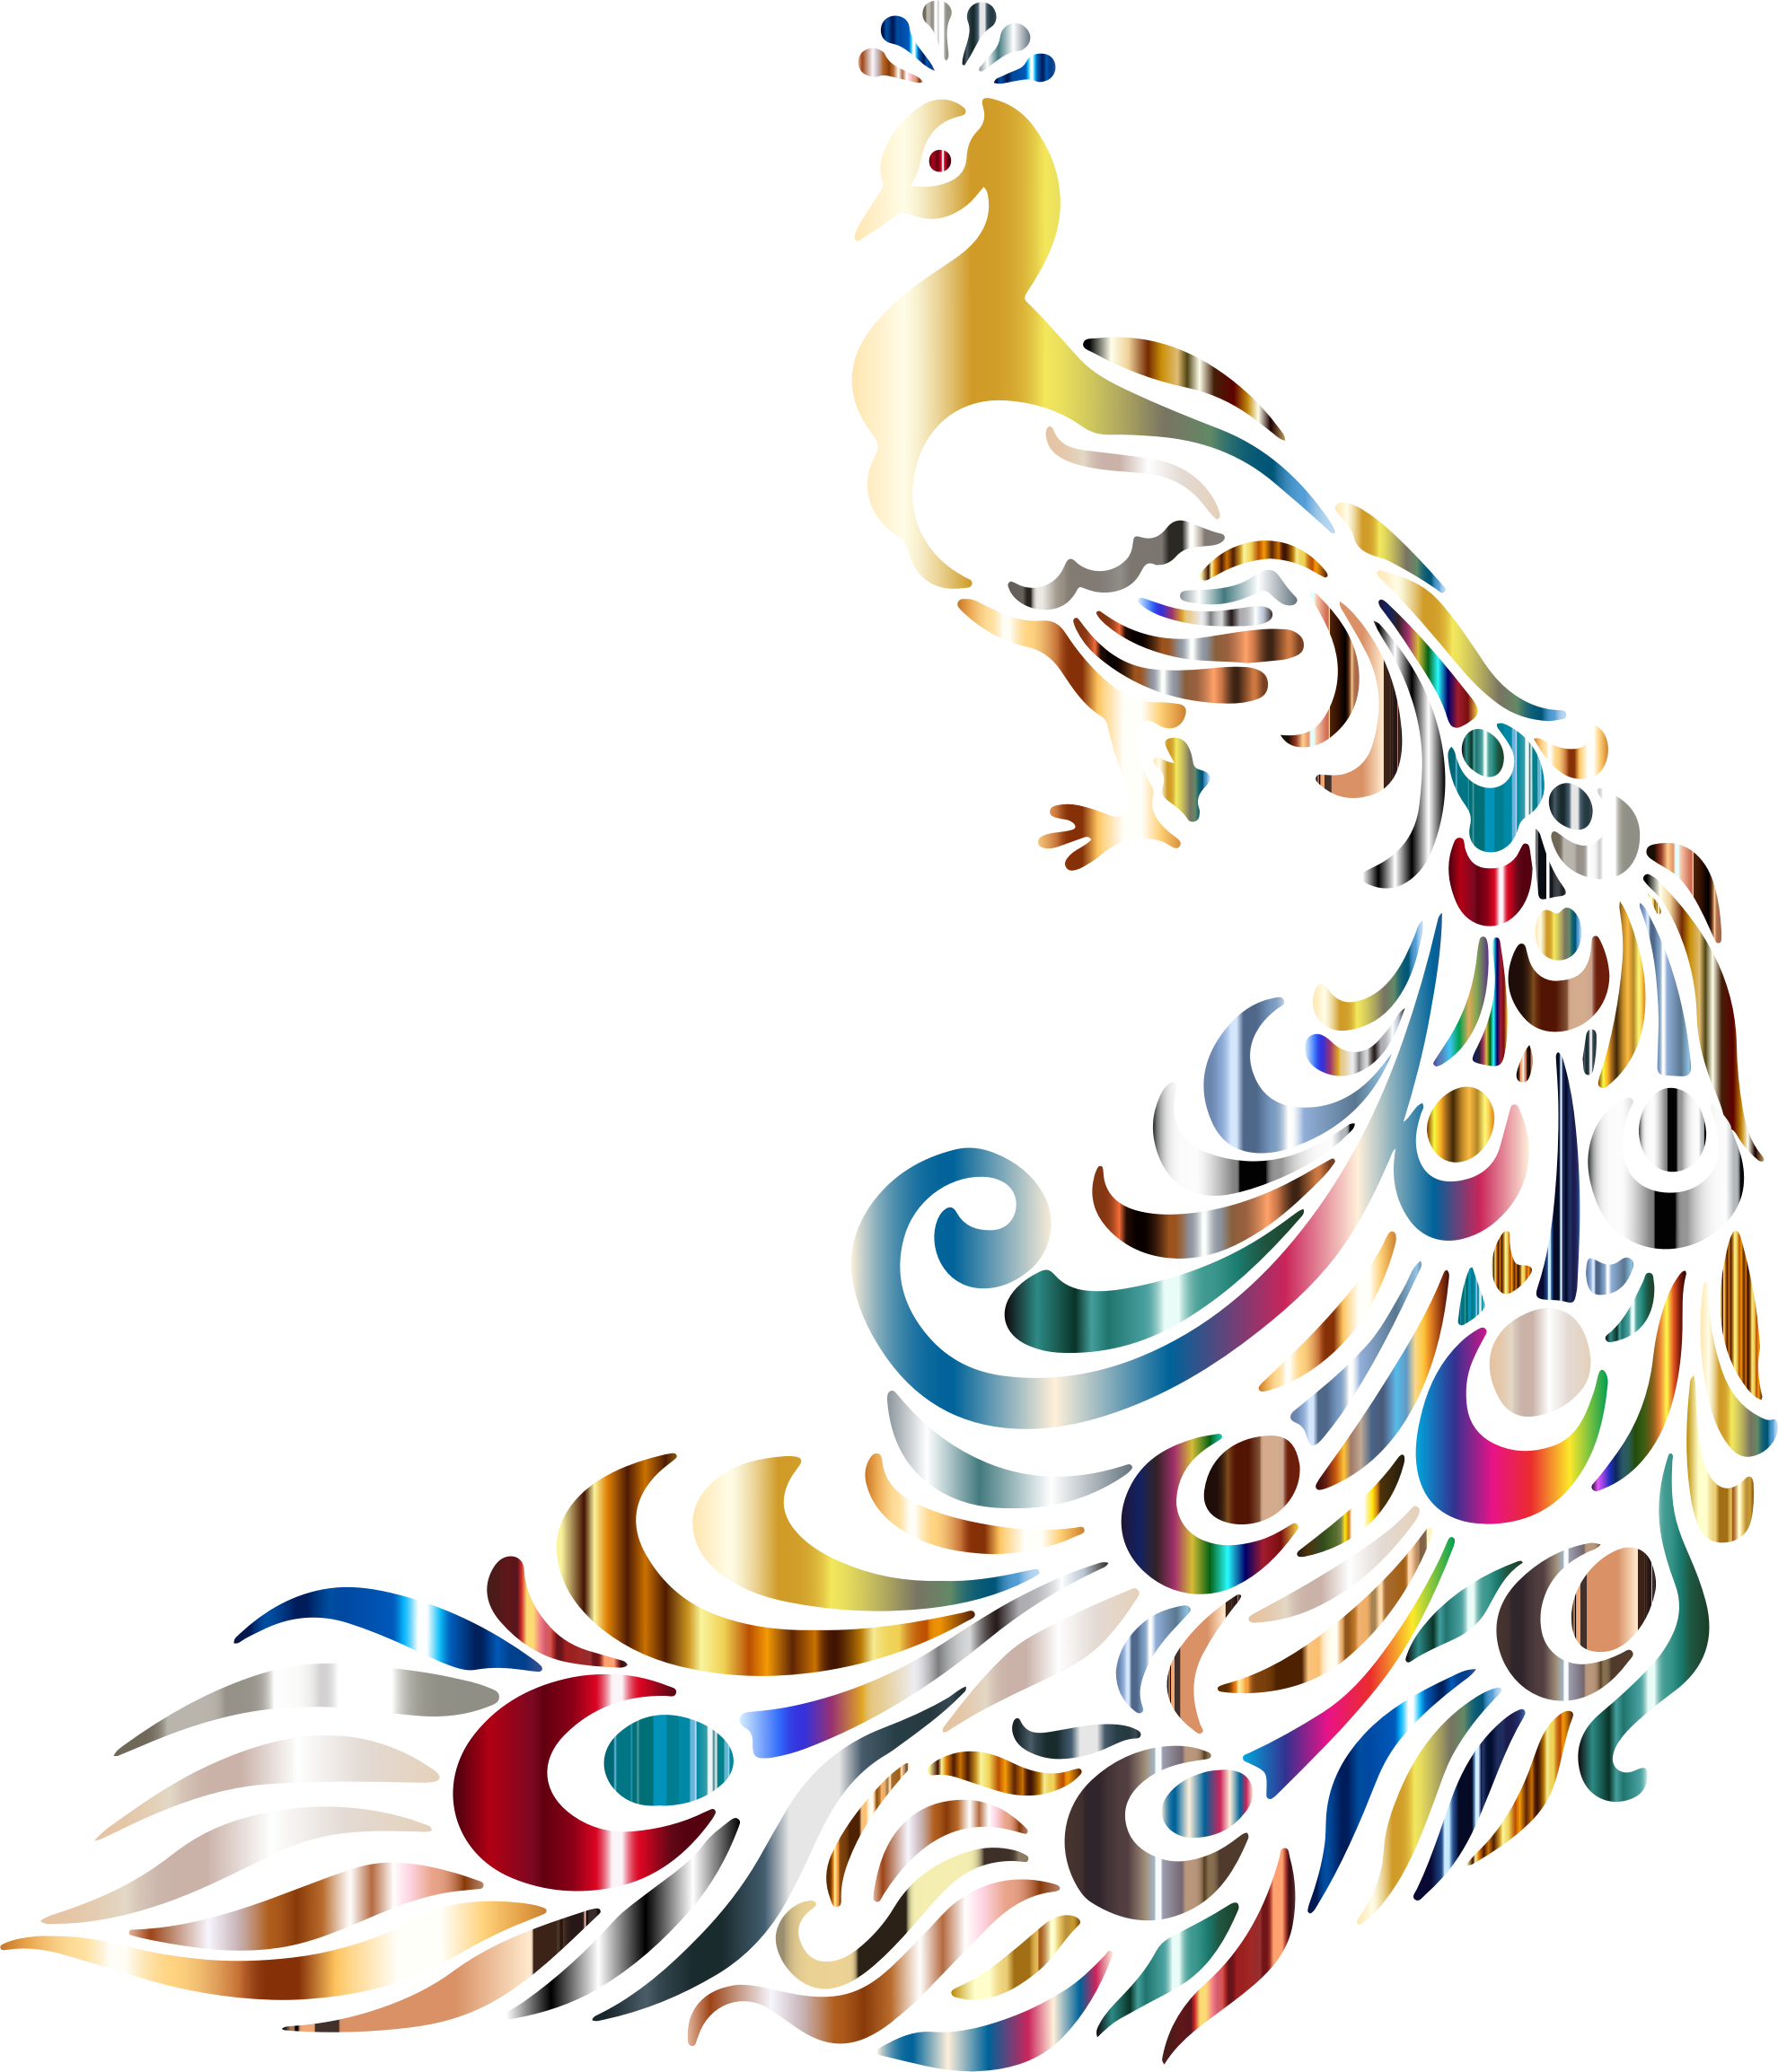 Clipart - Chromatic Peacock 3 No Background